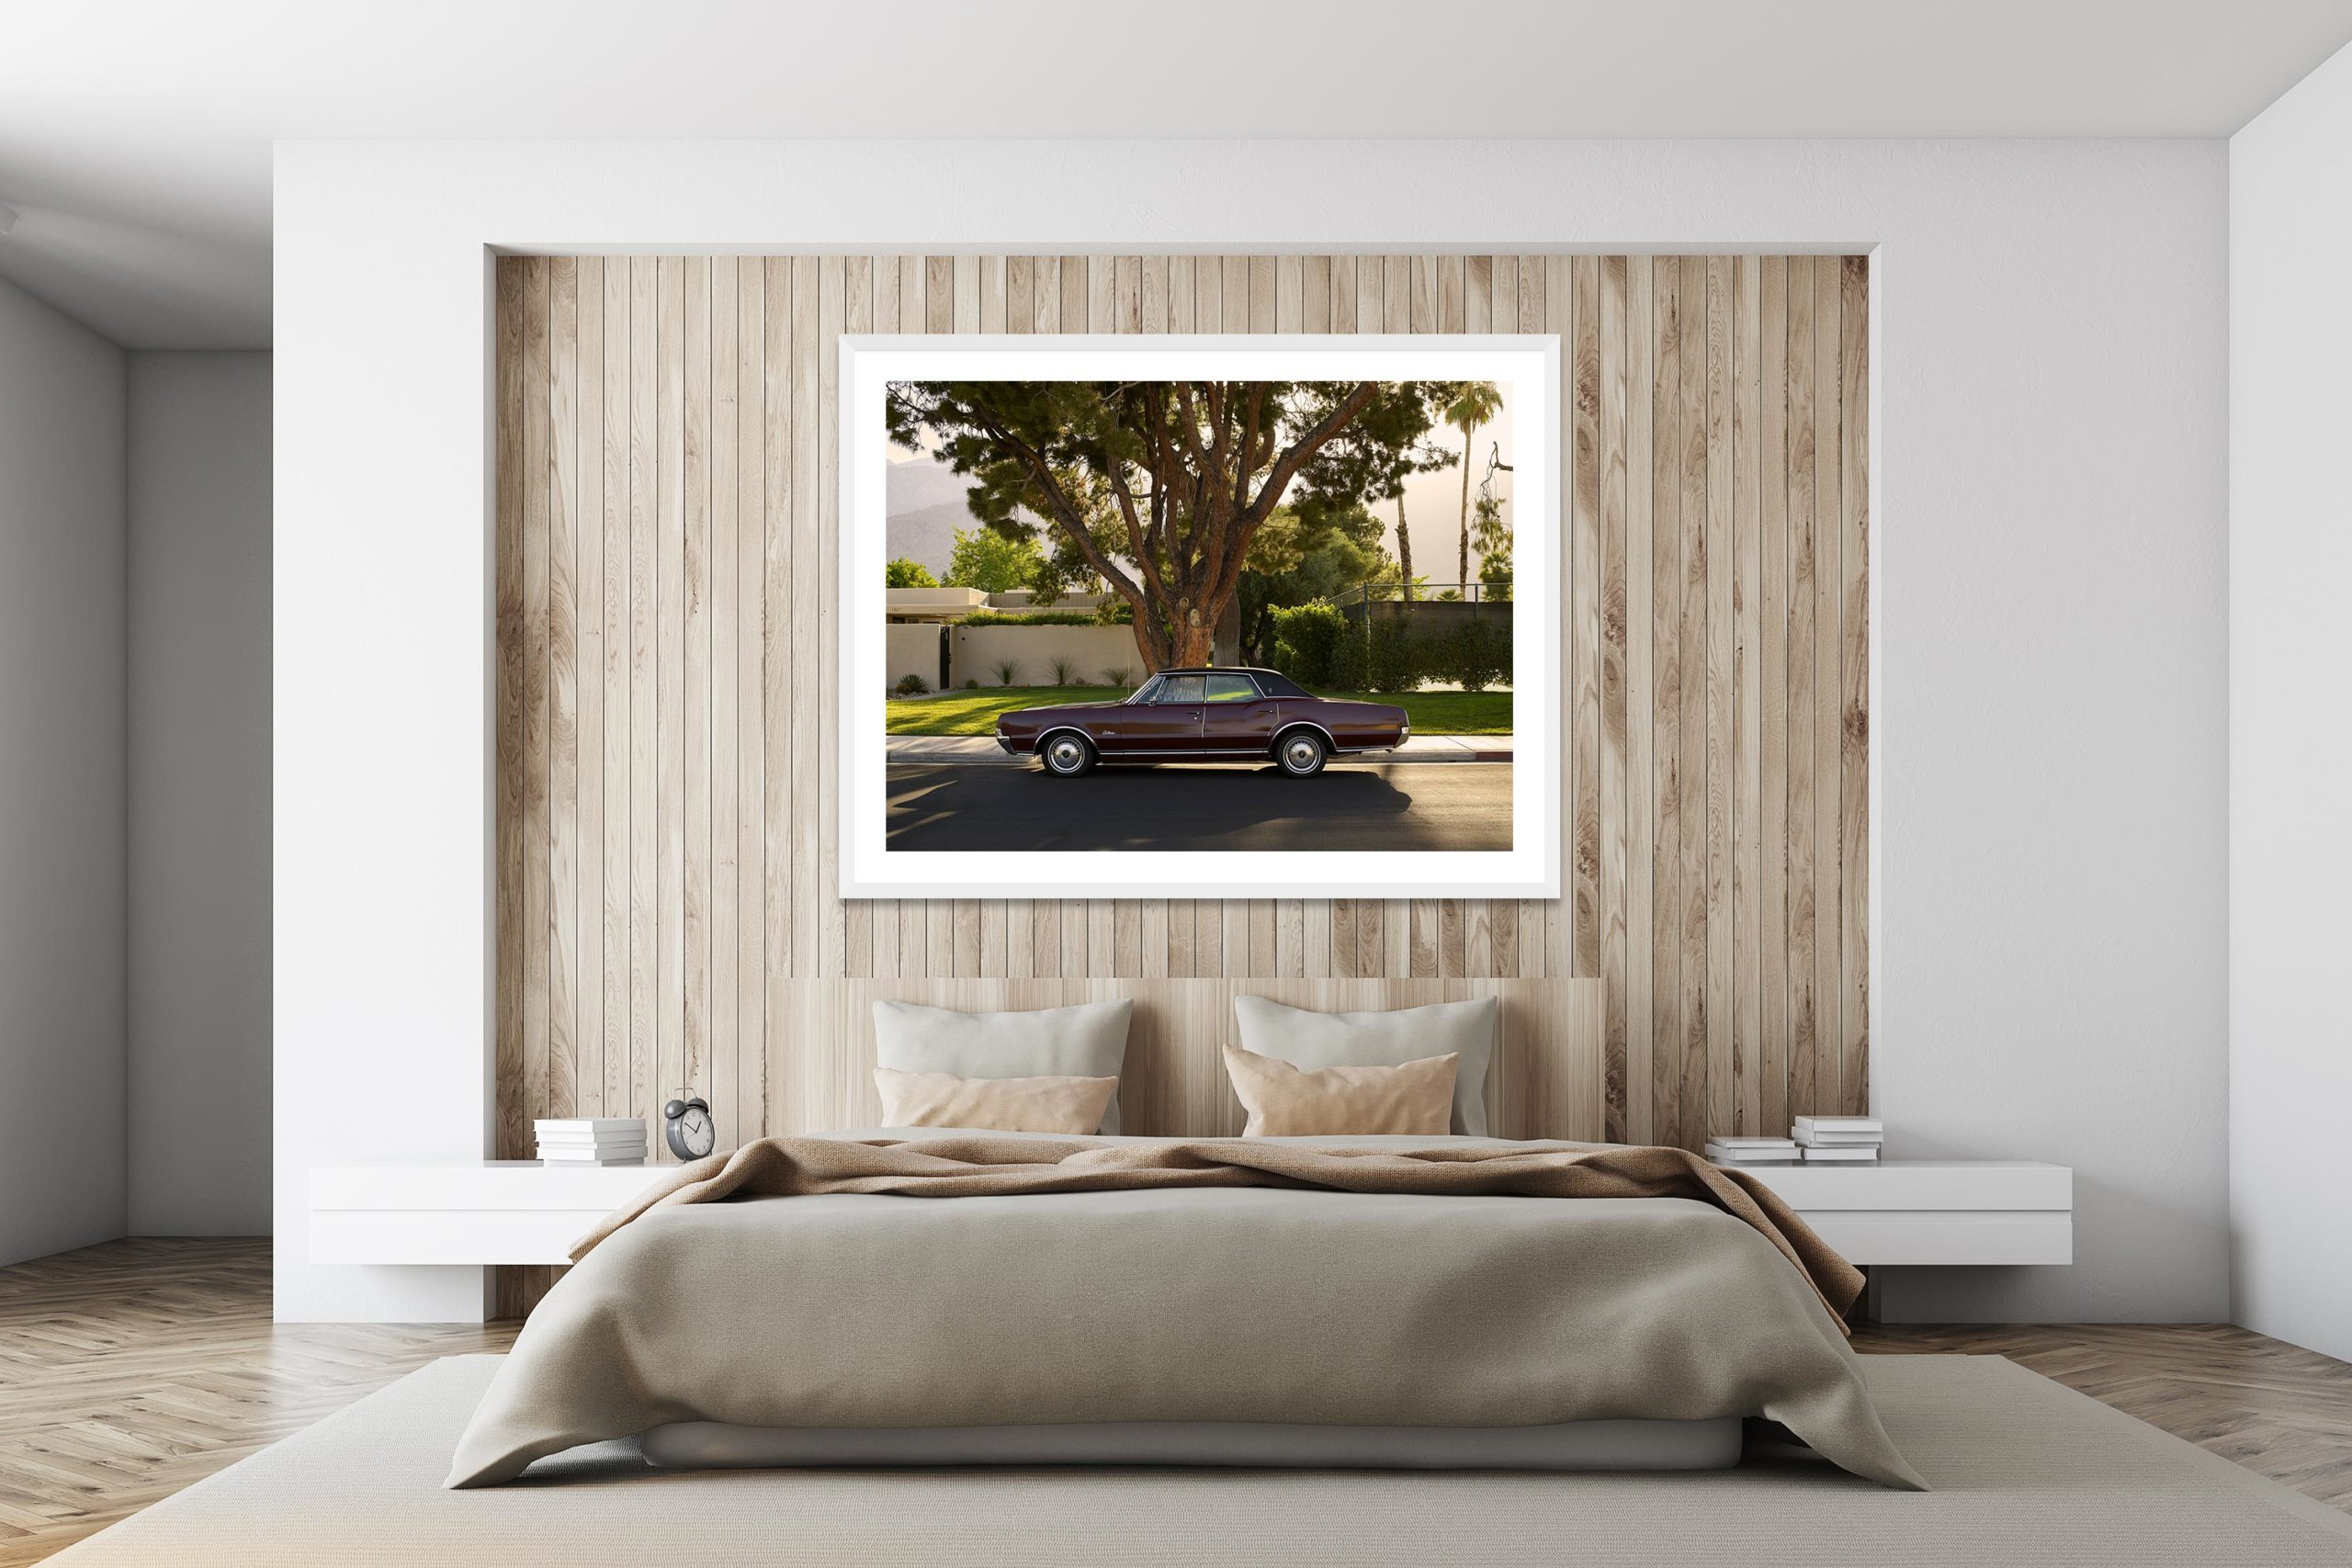 Olds Mobile - White Frame - I Heart Palm Springs Collection - Fine Art Photography by Toby Dixon